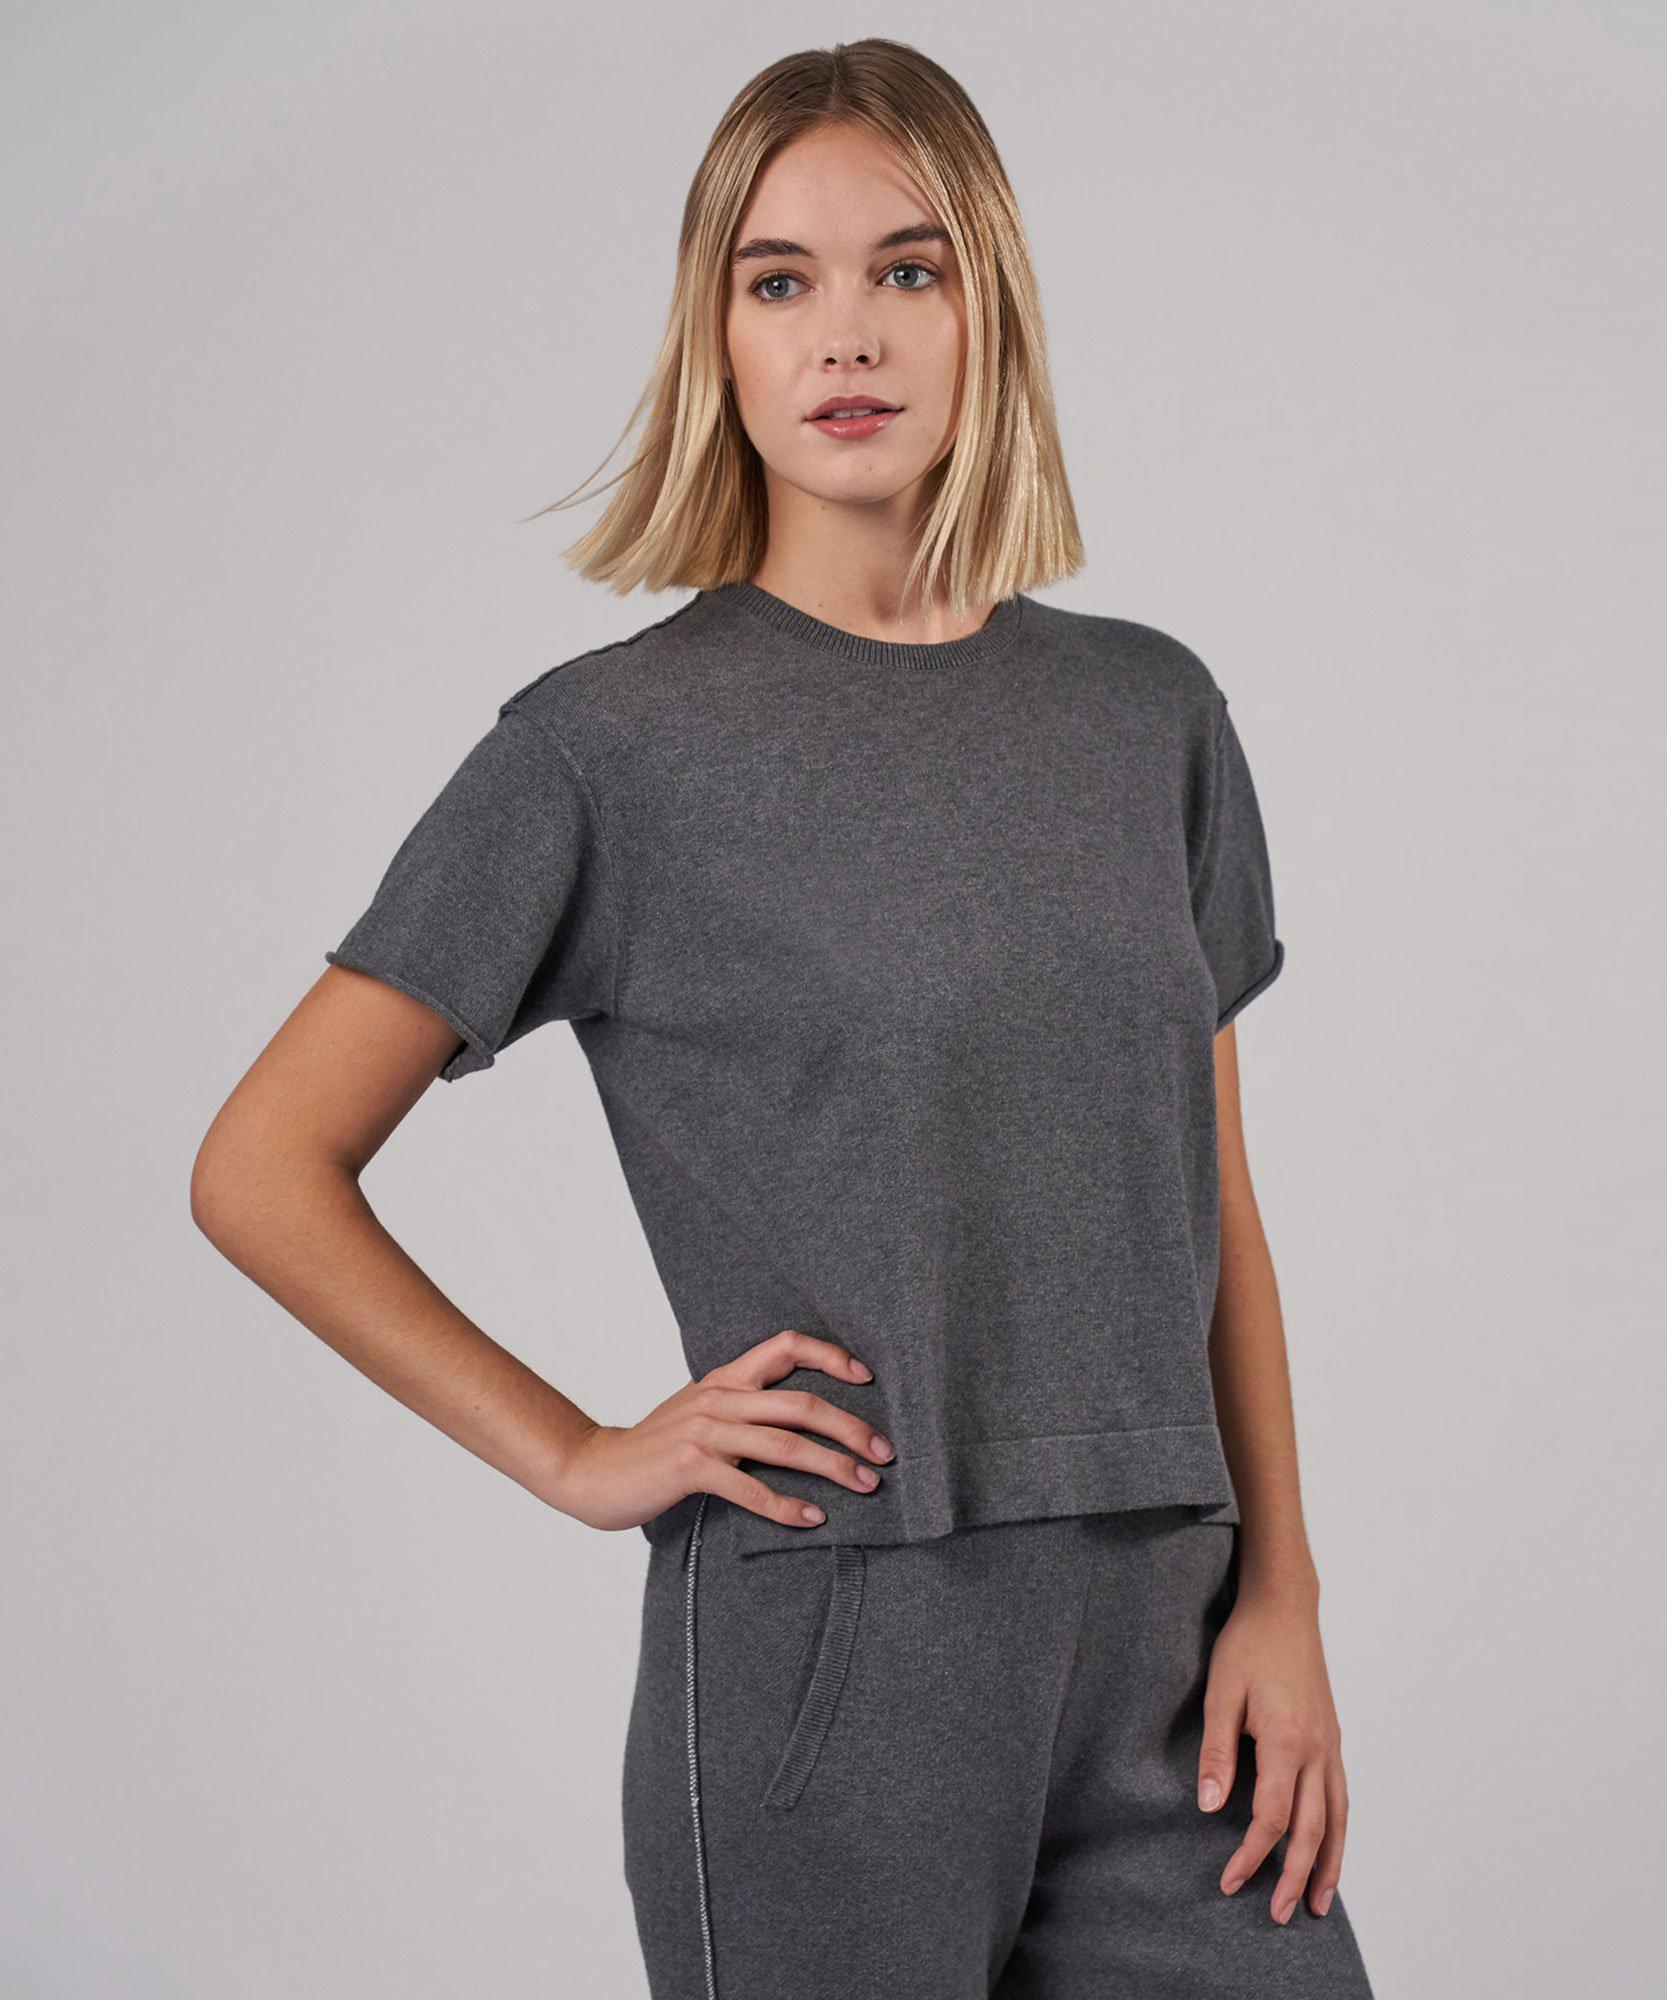 Cotton Cashmere Sweater Tee - Heather Charcoal